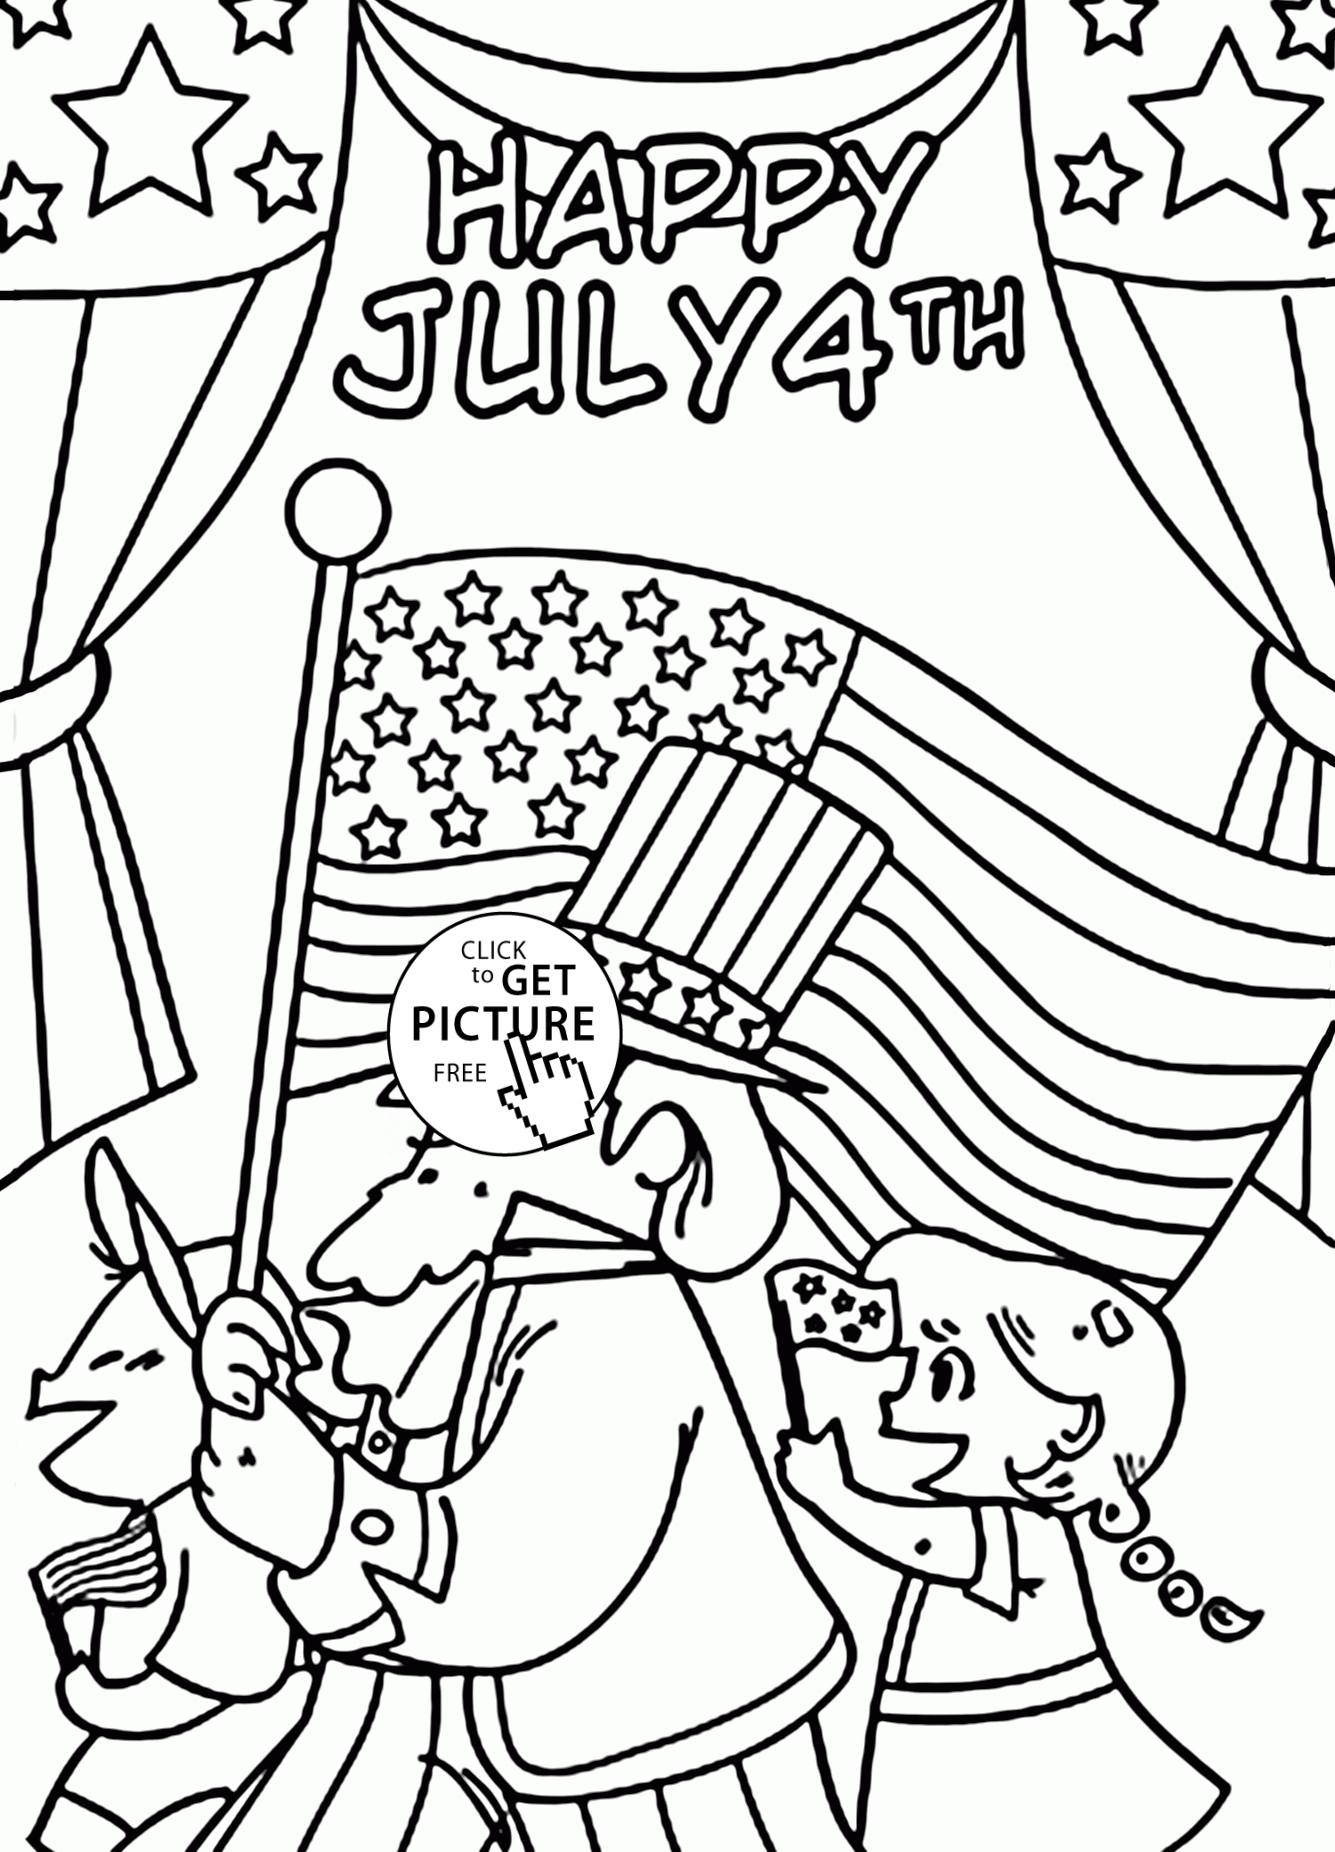 27 Fourth Of July Coloring Pages Images | FREE COLORING PAGES